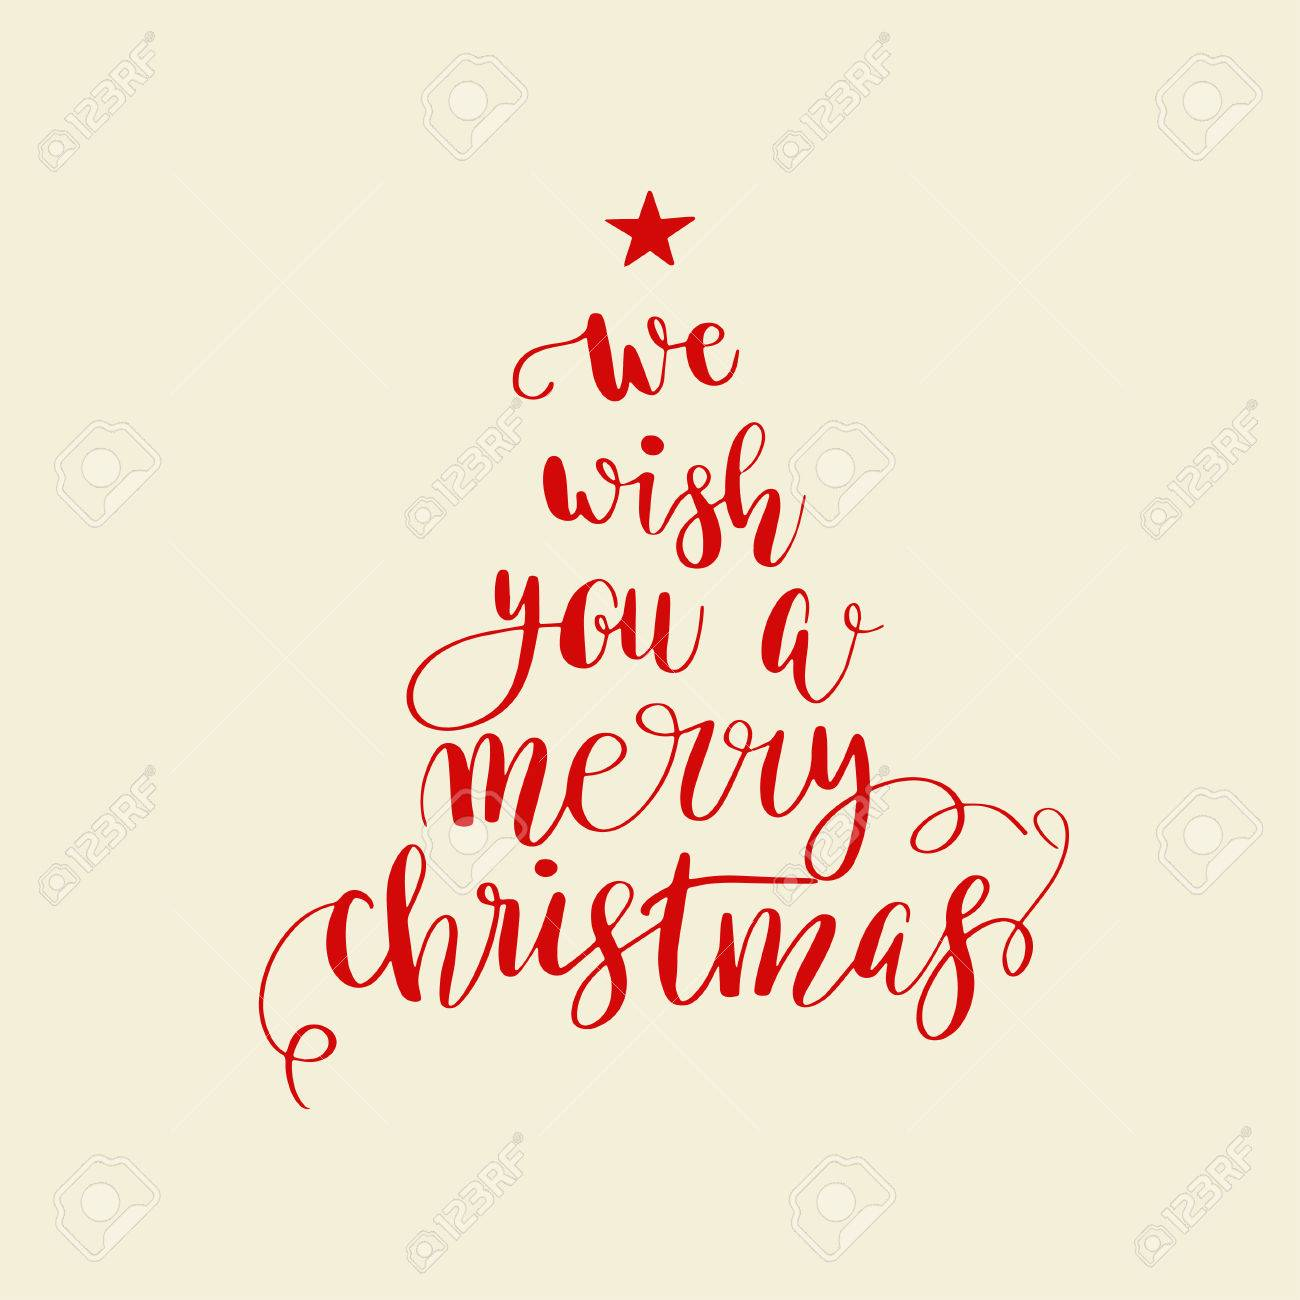 We Wish You A Merry Christmas Christmas Poster Or Greeting Card